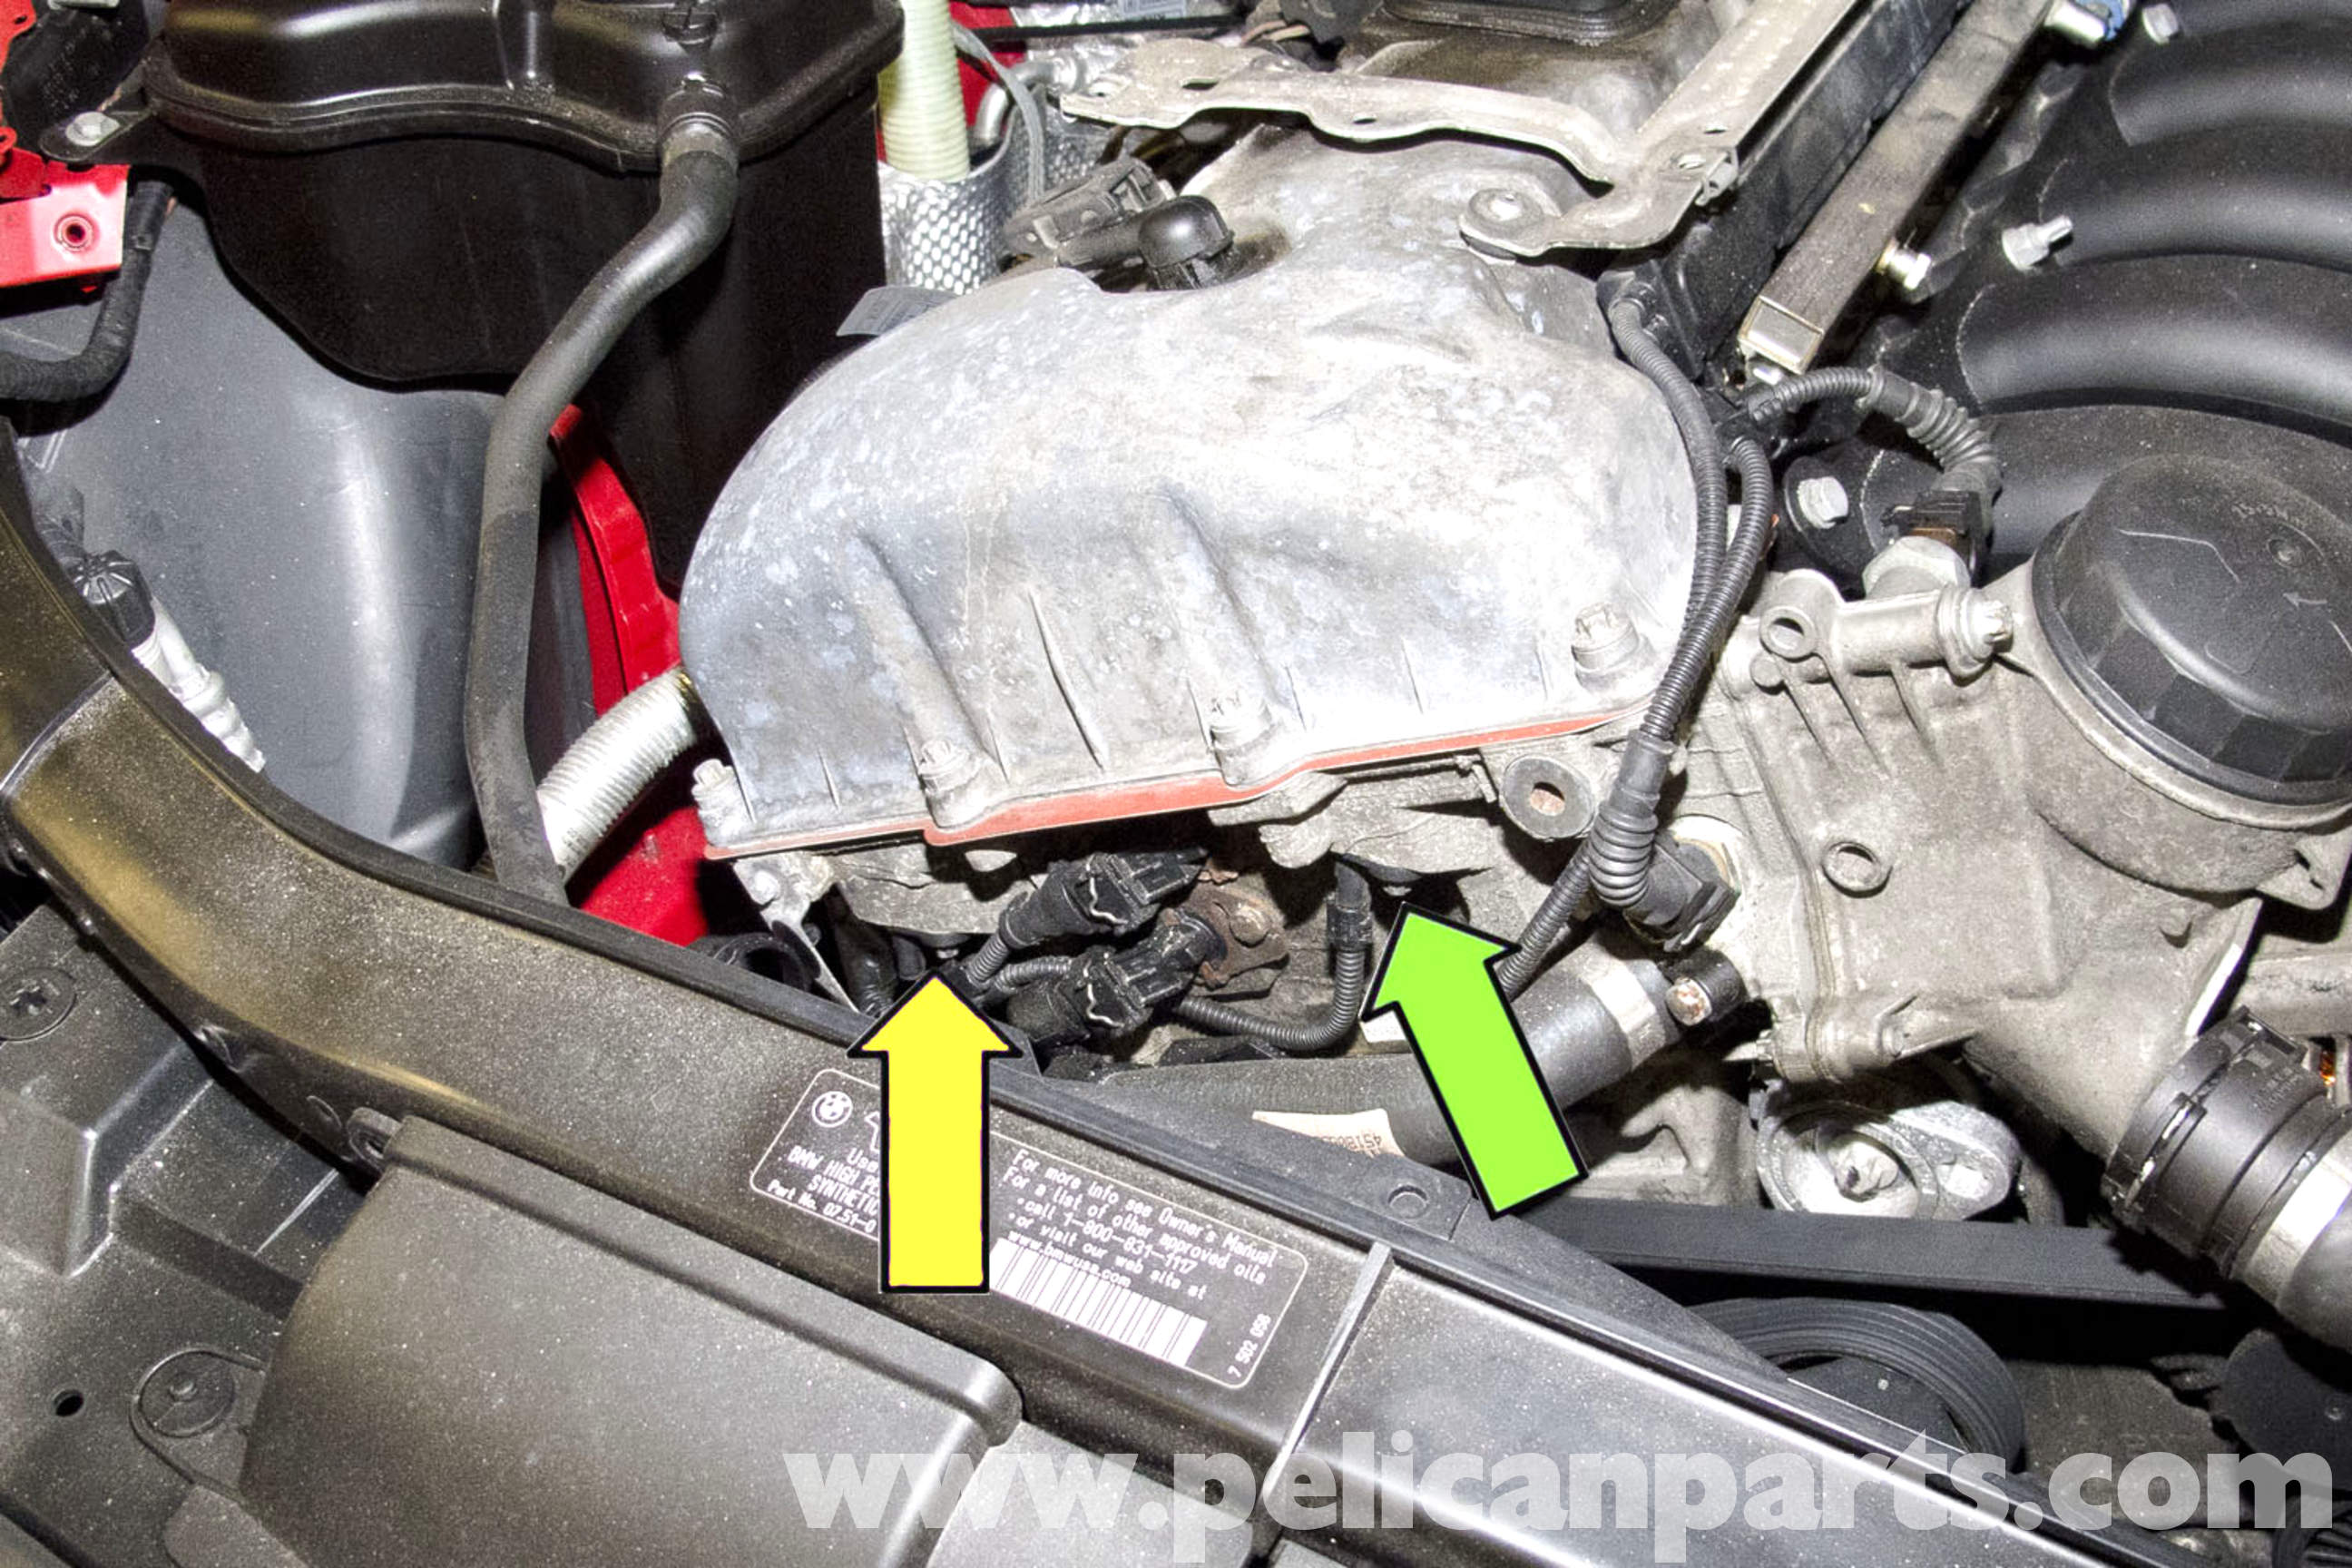 94 BRAKES Brake Booster Replacing furthermore Bmw Twinpower Turbo Engines Explained 50443 additionally Showthread likewise Showthread besides FUEL Camshaft Position Sensor Replacing. on bmw x3 cylinder diagram